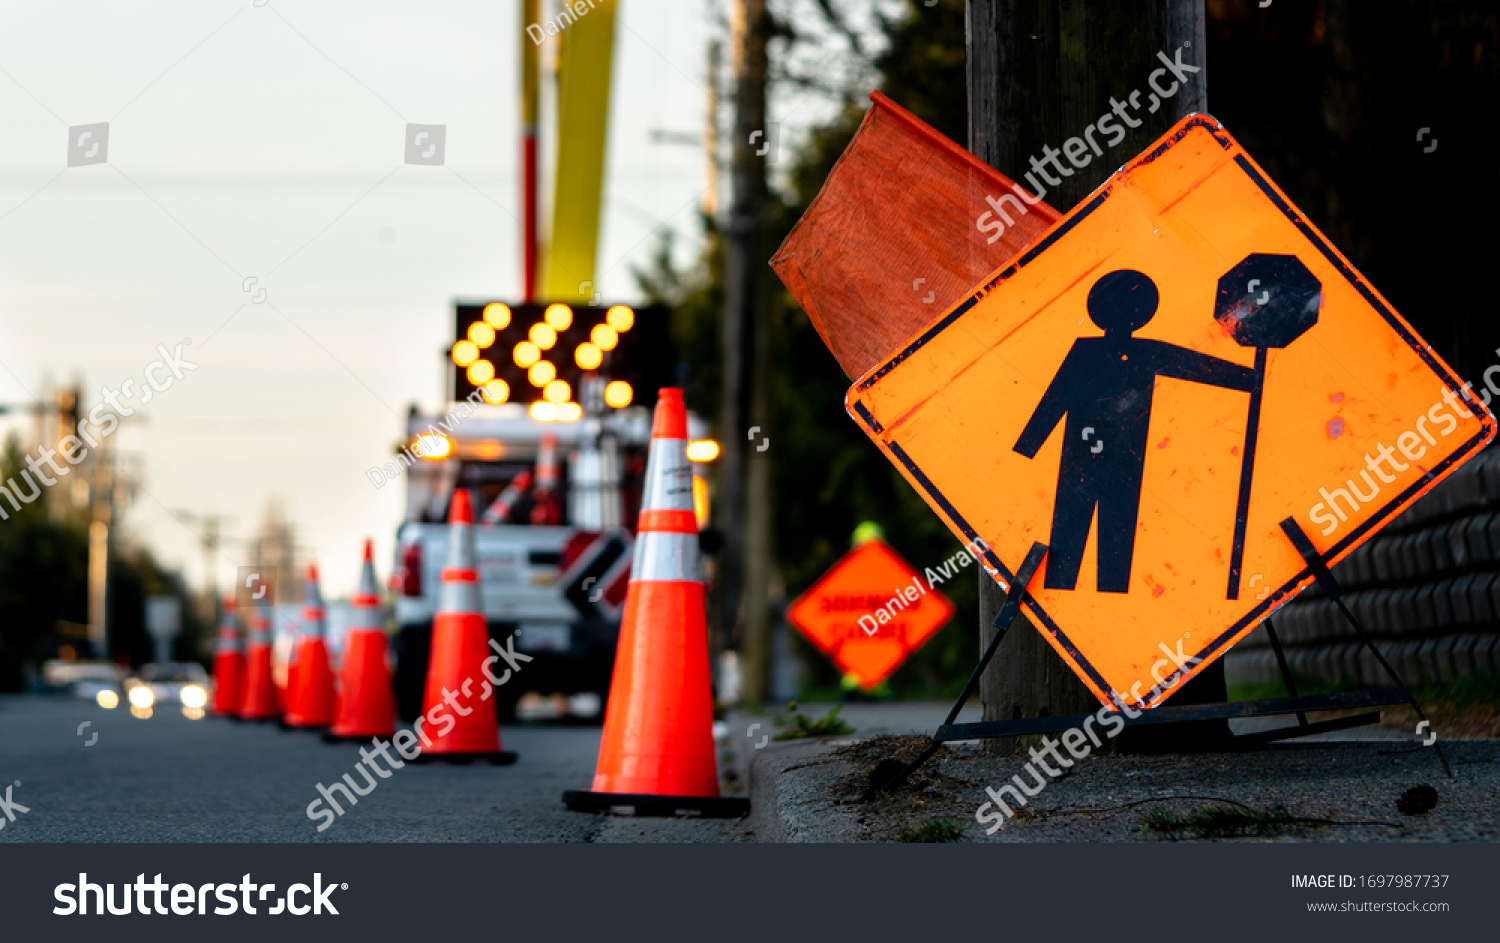 Lane closure on a busy road due to maintenance, signs detour traffic temporary street work orange lighted arrow, barrels and cones. #1697987737